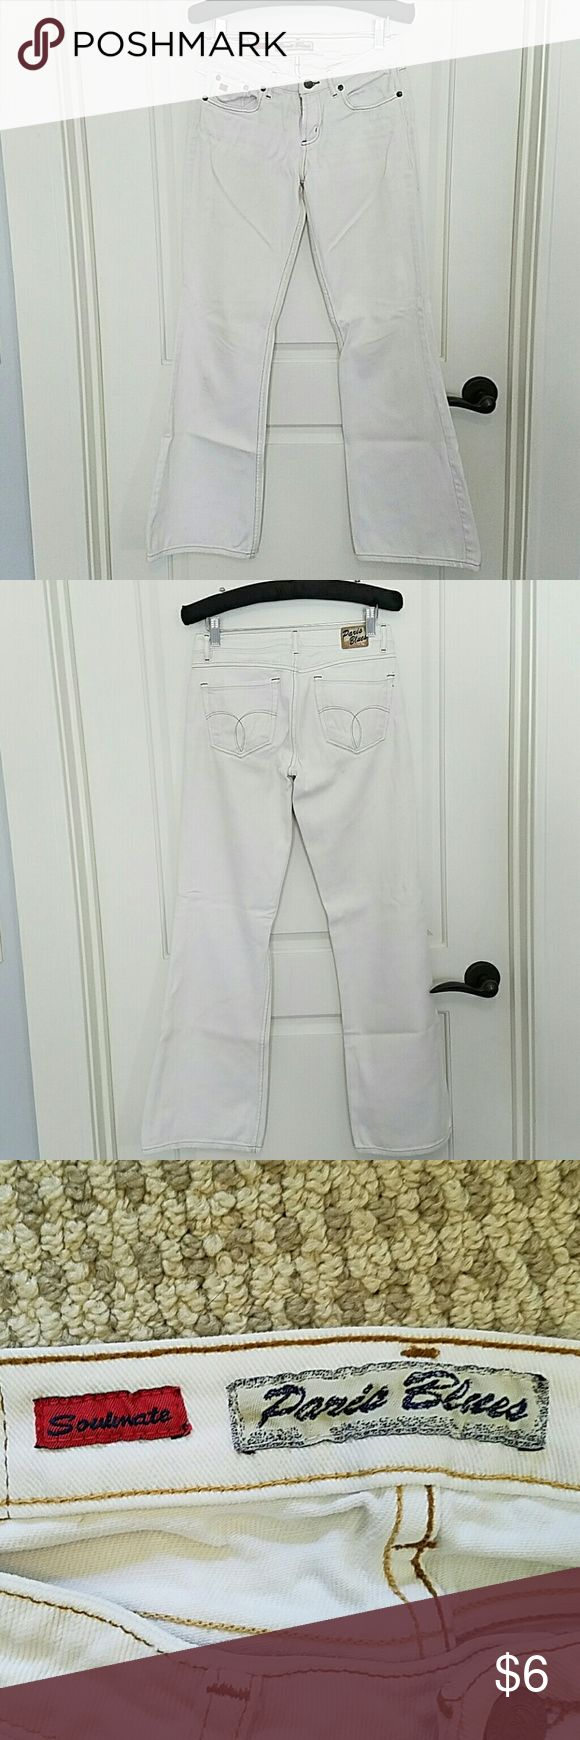 """White Bootcut Jeans Denim jeans """"soulmate"""" style with a 30.5"""" inseam. Couple of teeny tiny spots but I think they just need to be washed Paris Blues Jeans Boot Cut"""